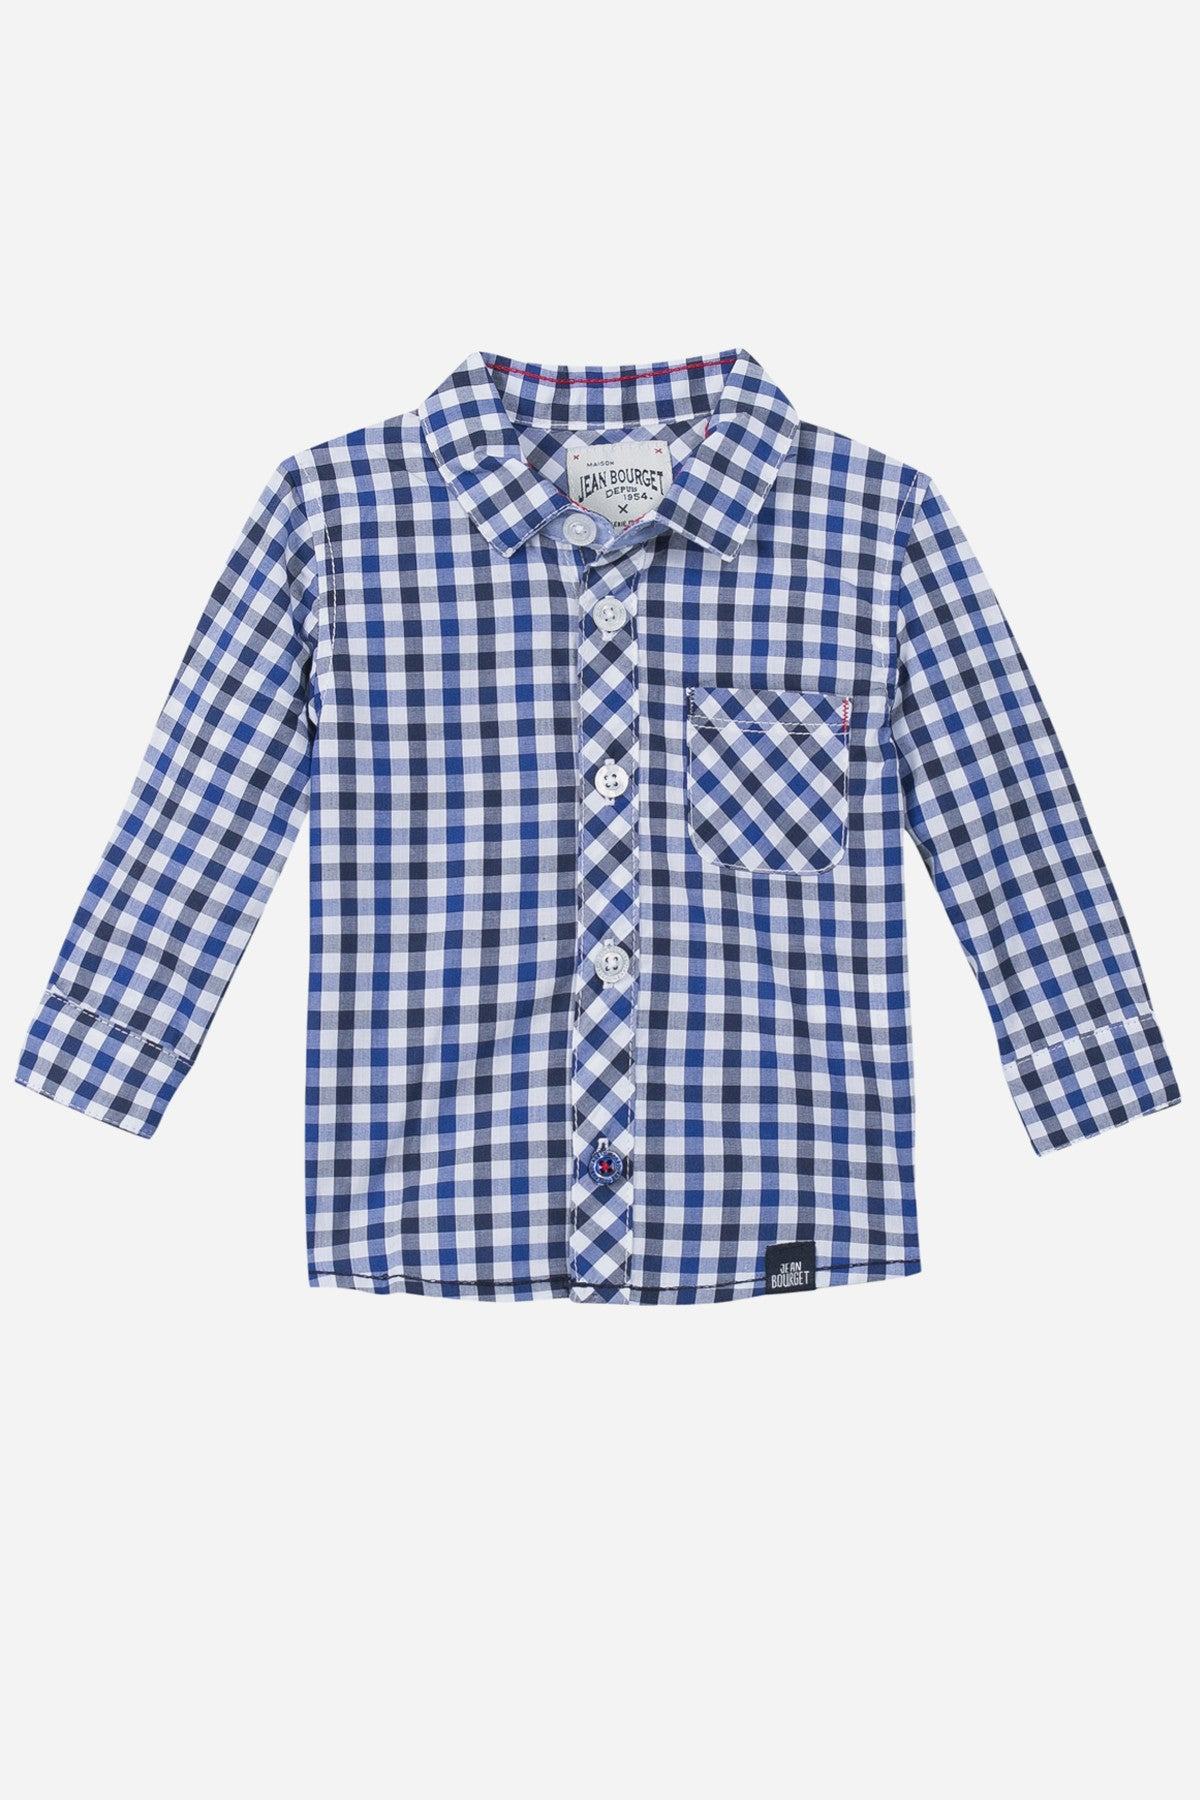 Jean Bourget Baby Checkered Shirt